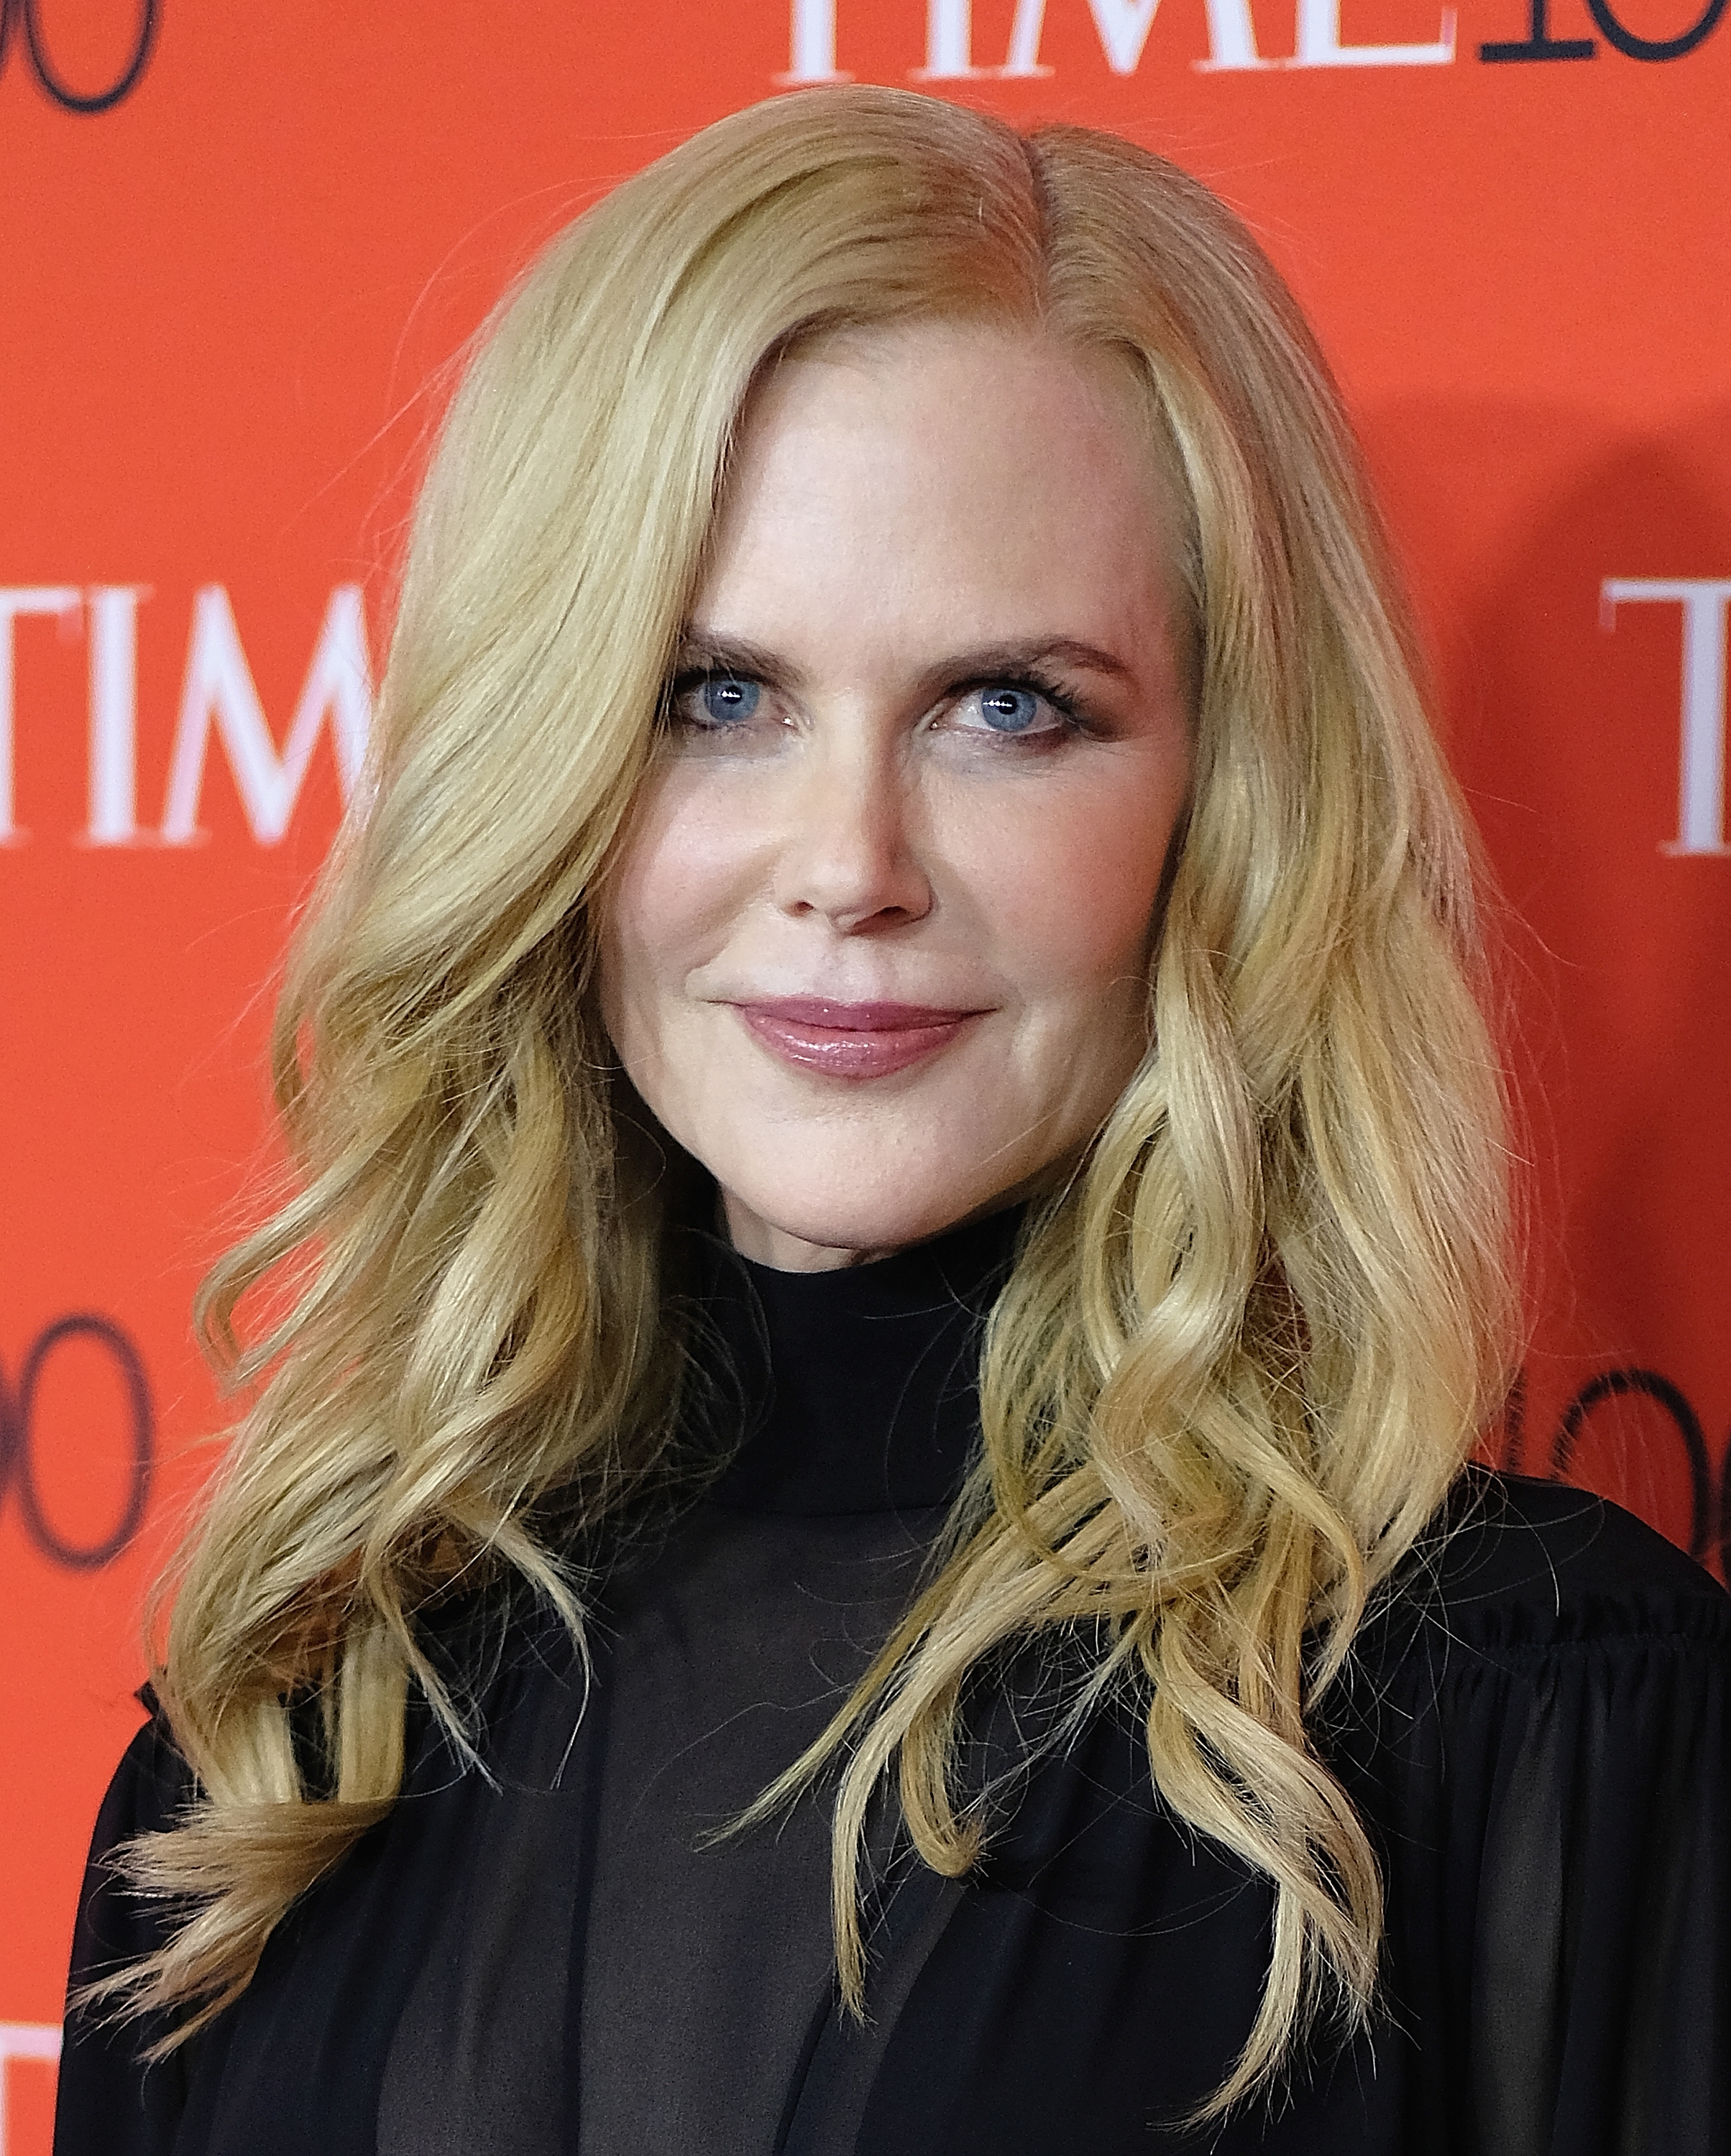 Actor Nicole Kidman attends the 2018 Time 100 Gala at Jazz at Lincoln Center on April 24, 2018 in New York City. (Photo by Dimitrios Kambouris/Getty Images for Time)